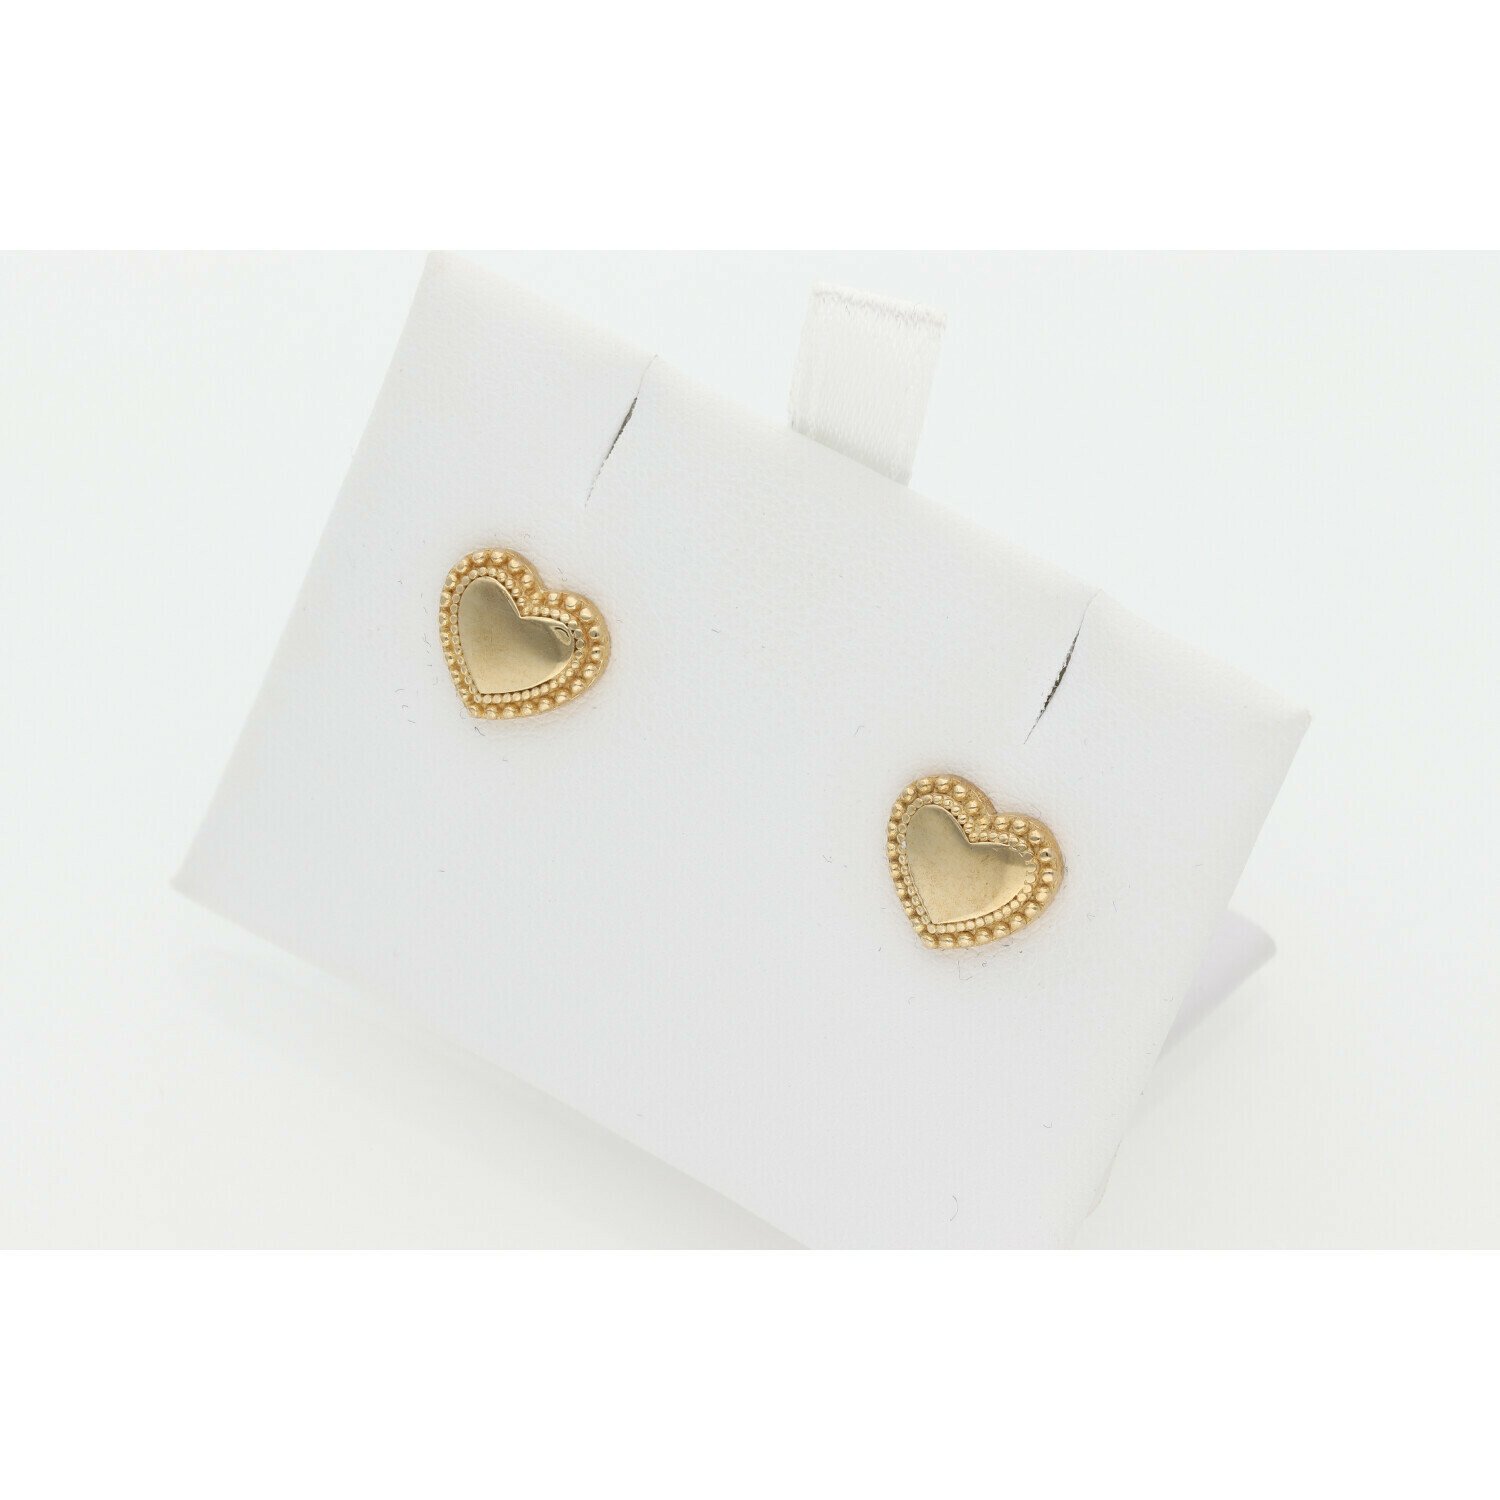 10 Karat Gold Heart Earrings